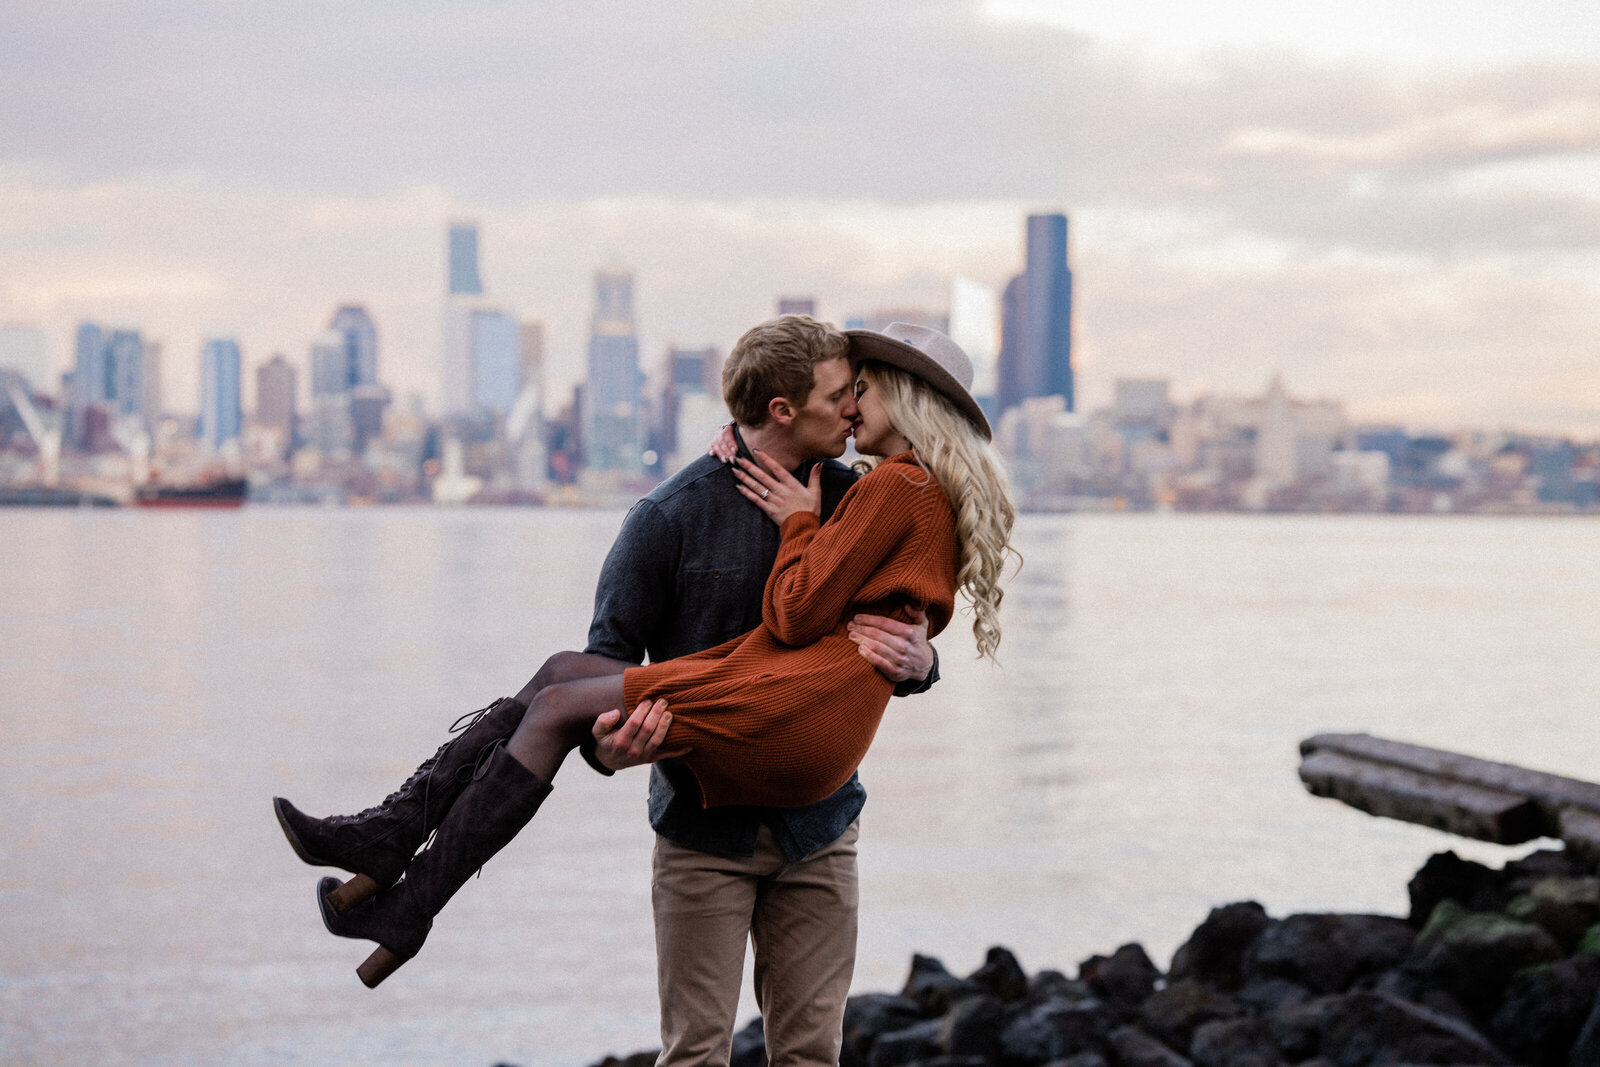 Man is holding woman in front of the Seattle skyline, one of the best spots to take engagement photos in Seattle